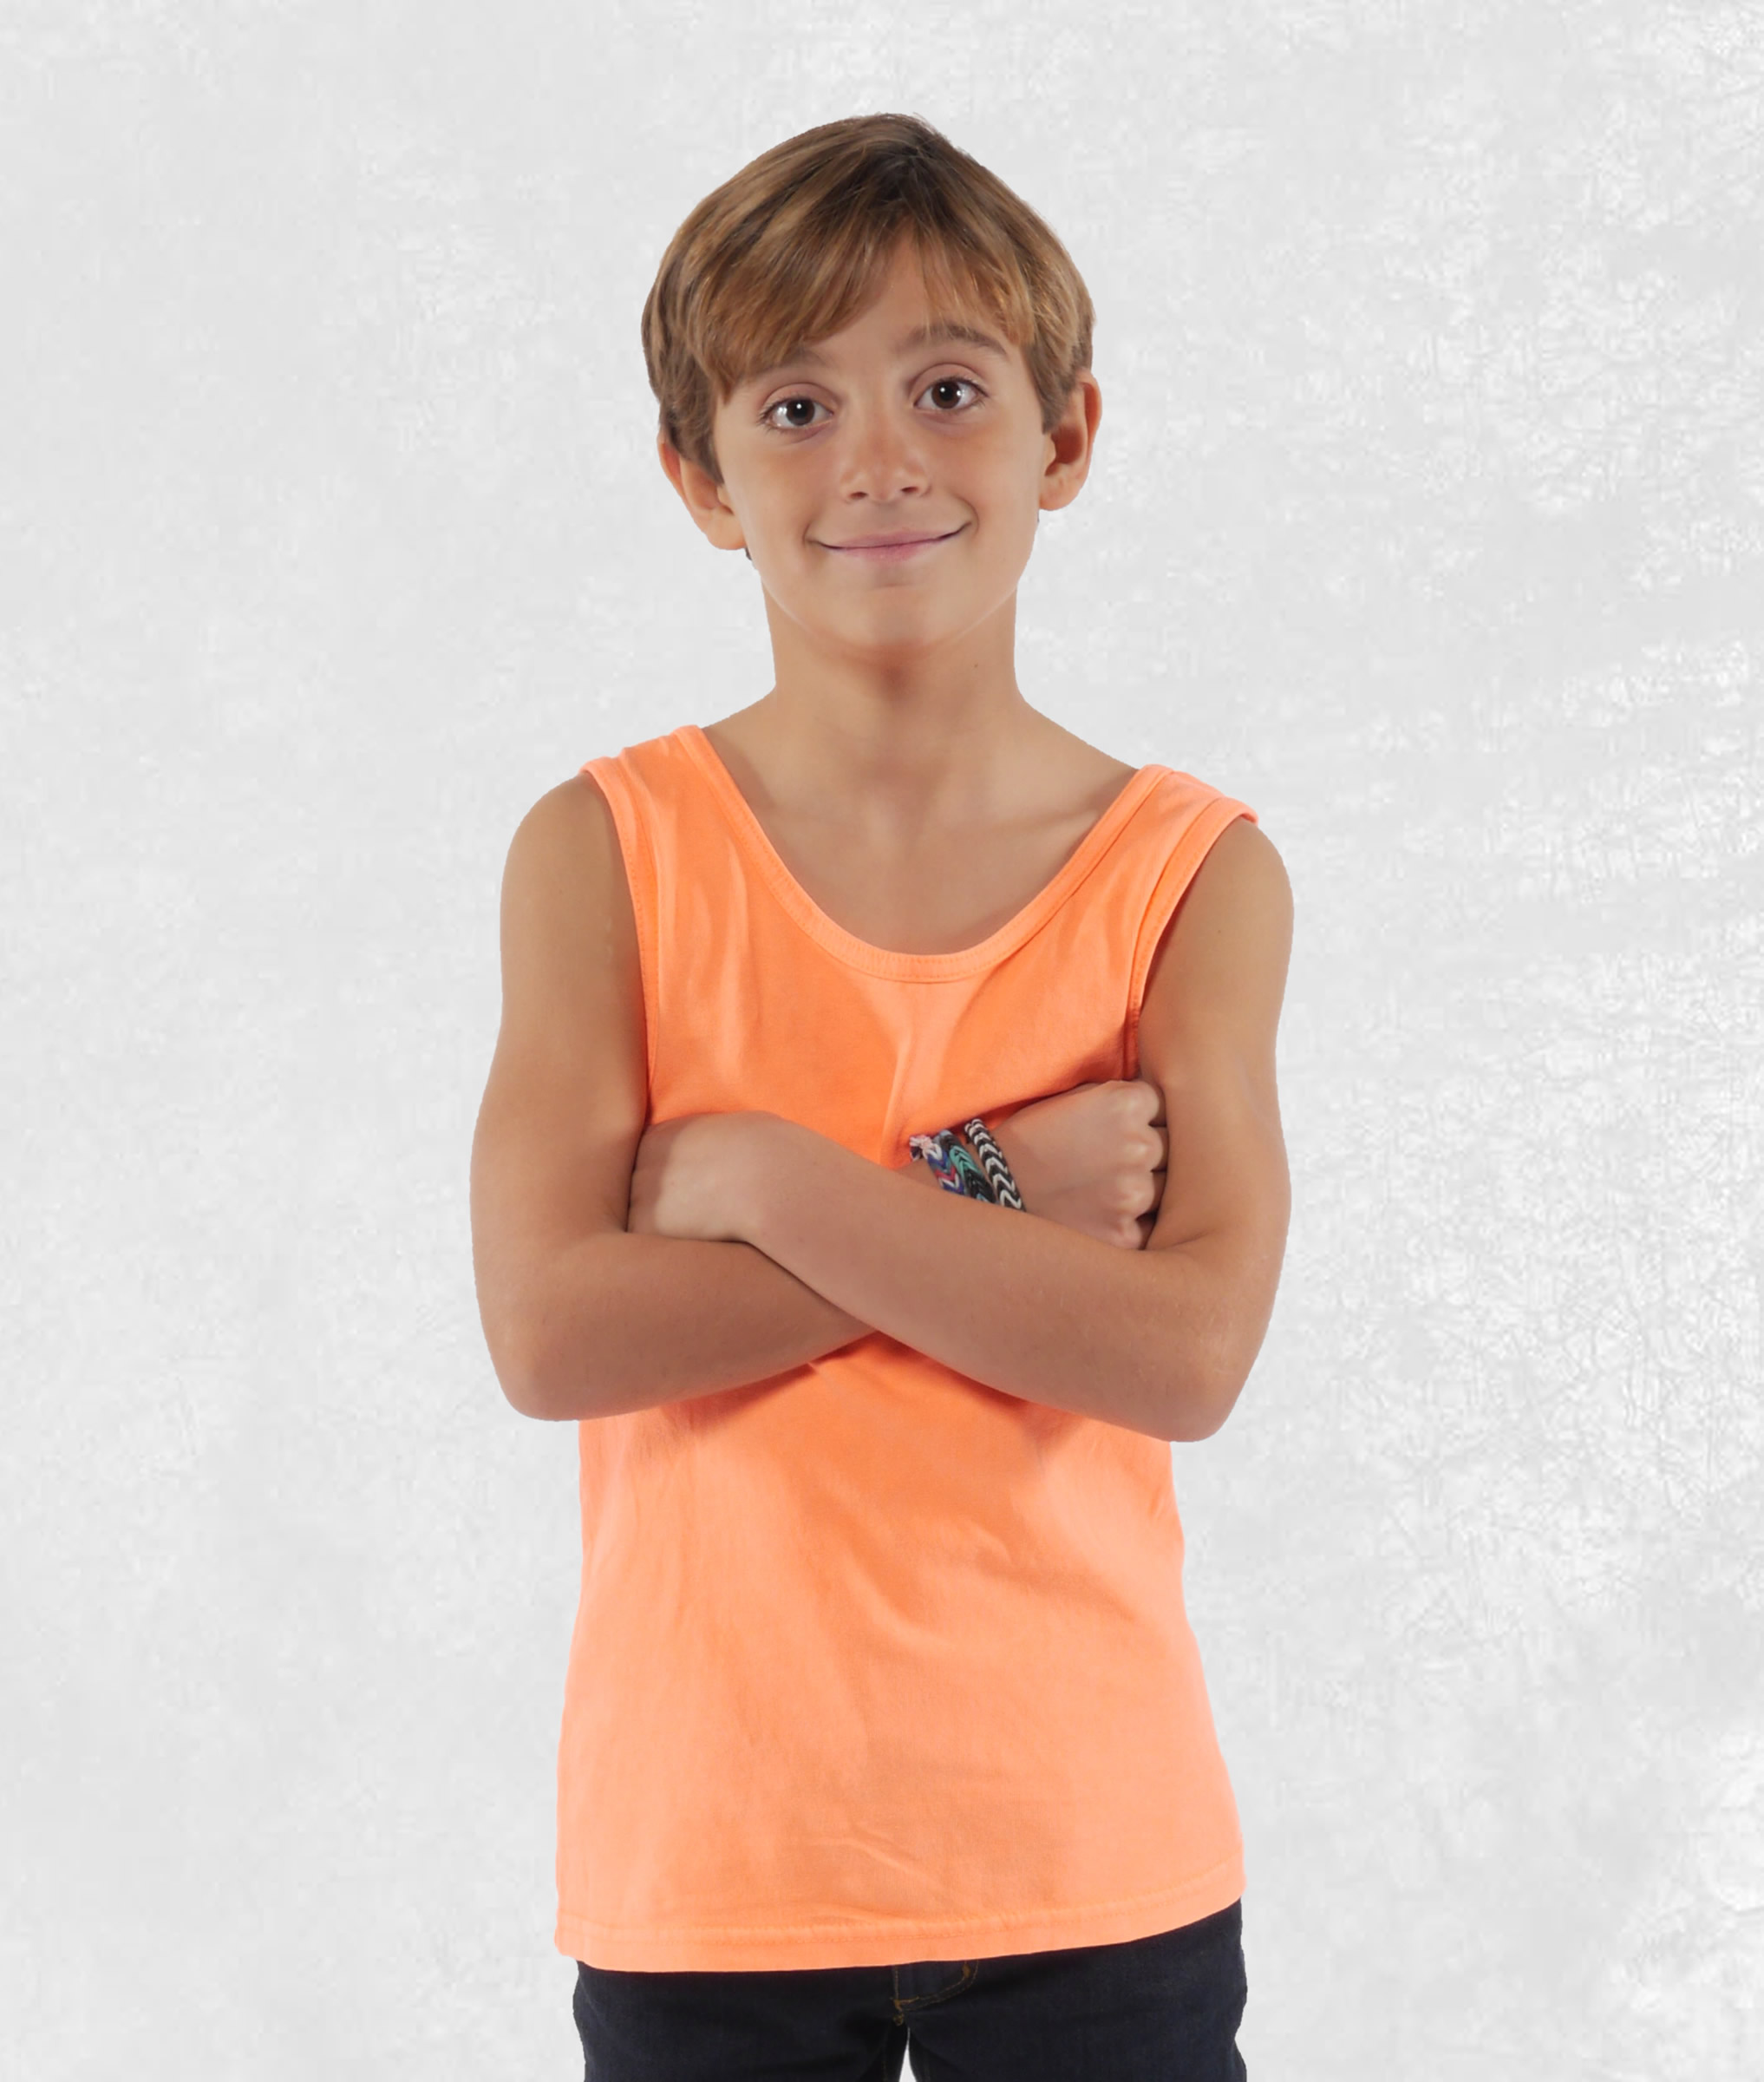 Youth Neon Orange Tank Top